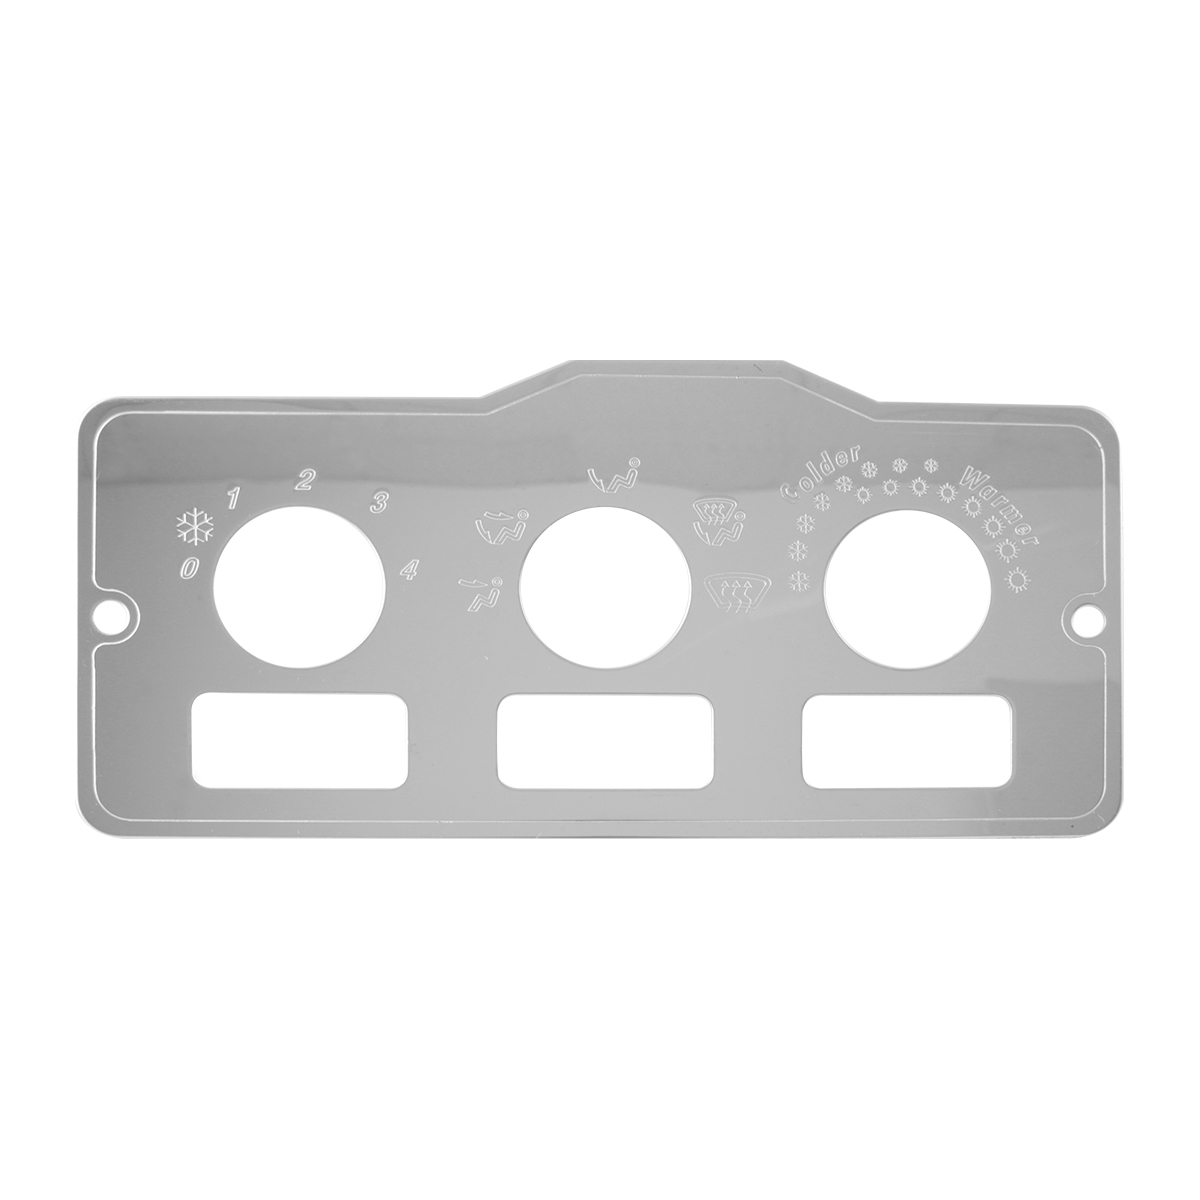 68322 AC Control Plate w/ 3 Switches for Peterbilt 370 Series 1995 & Later